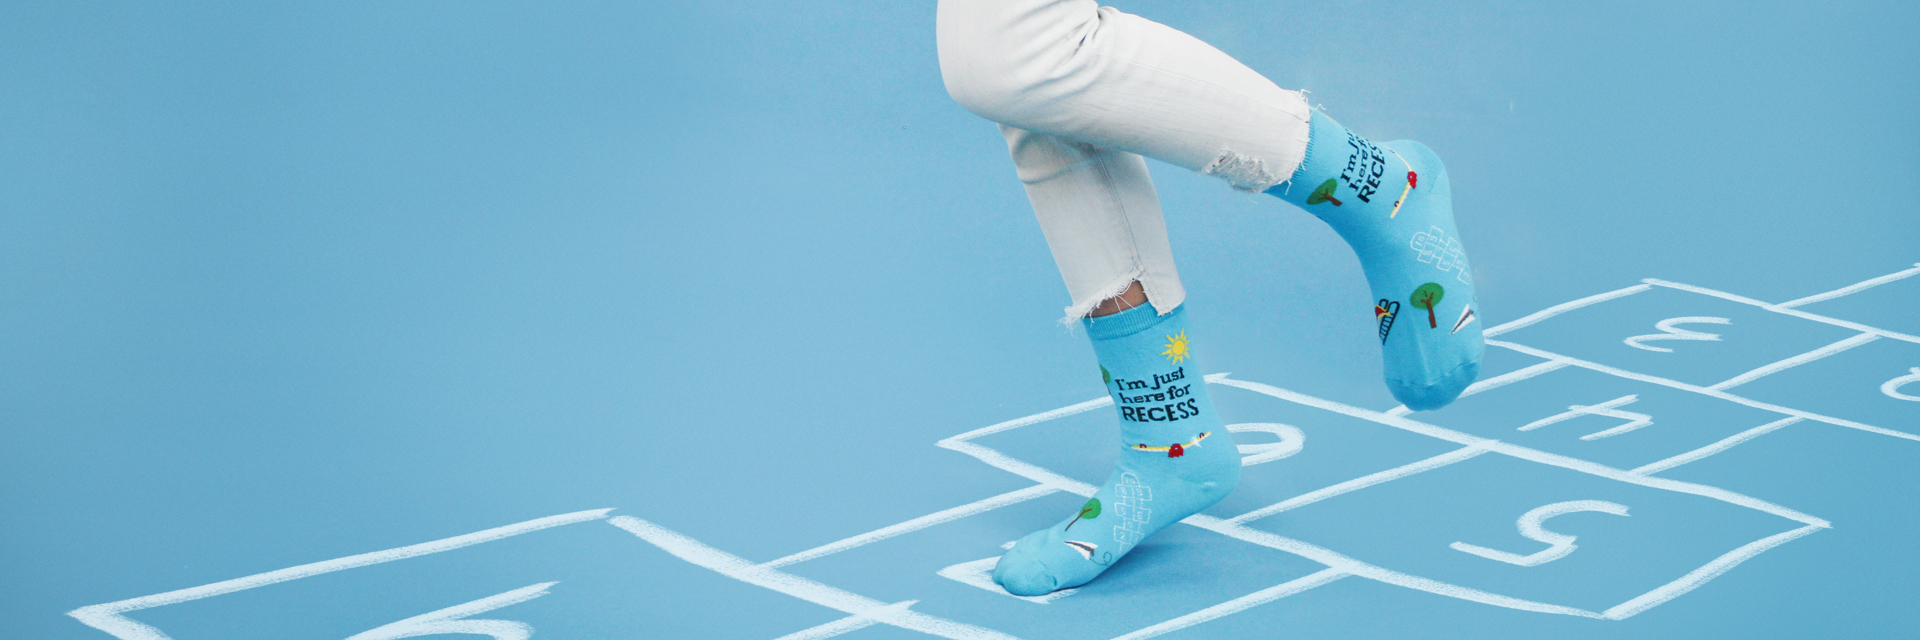 kids recess hop scotch socks